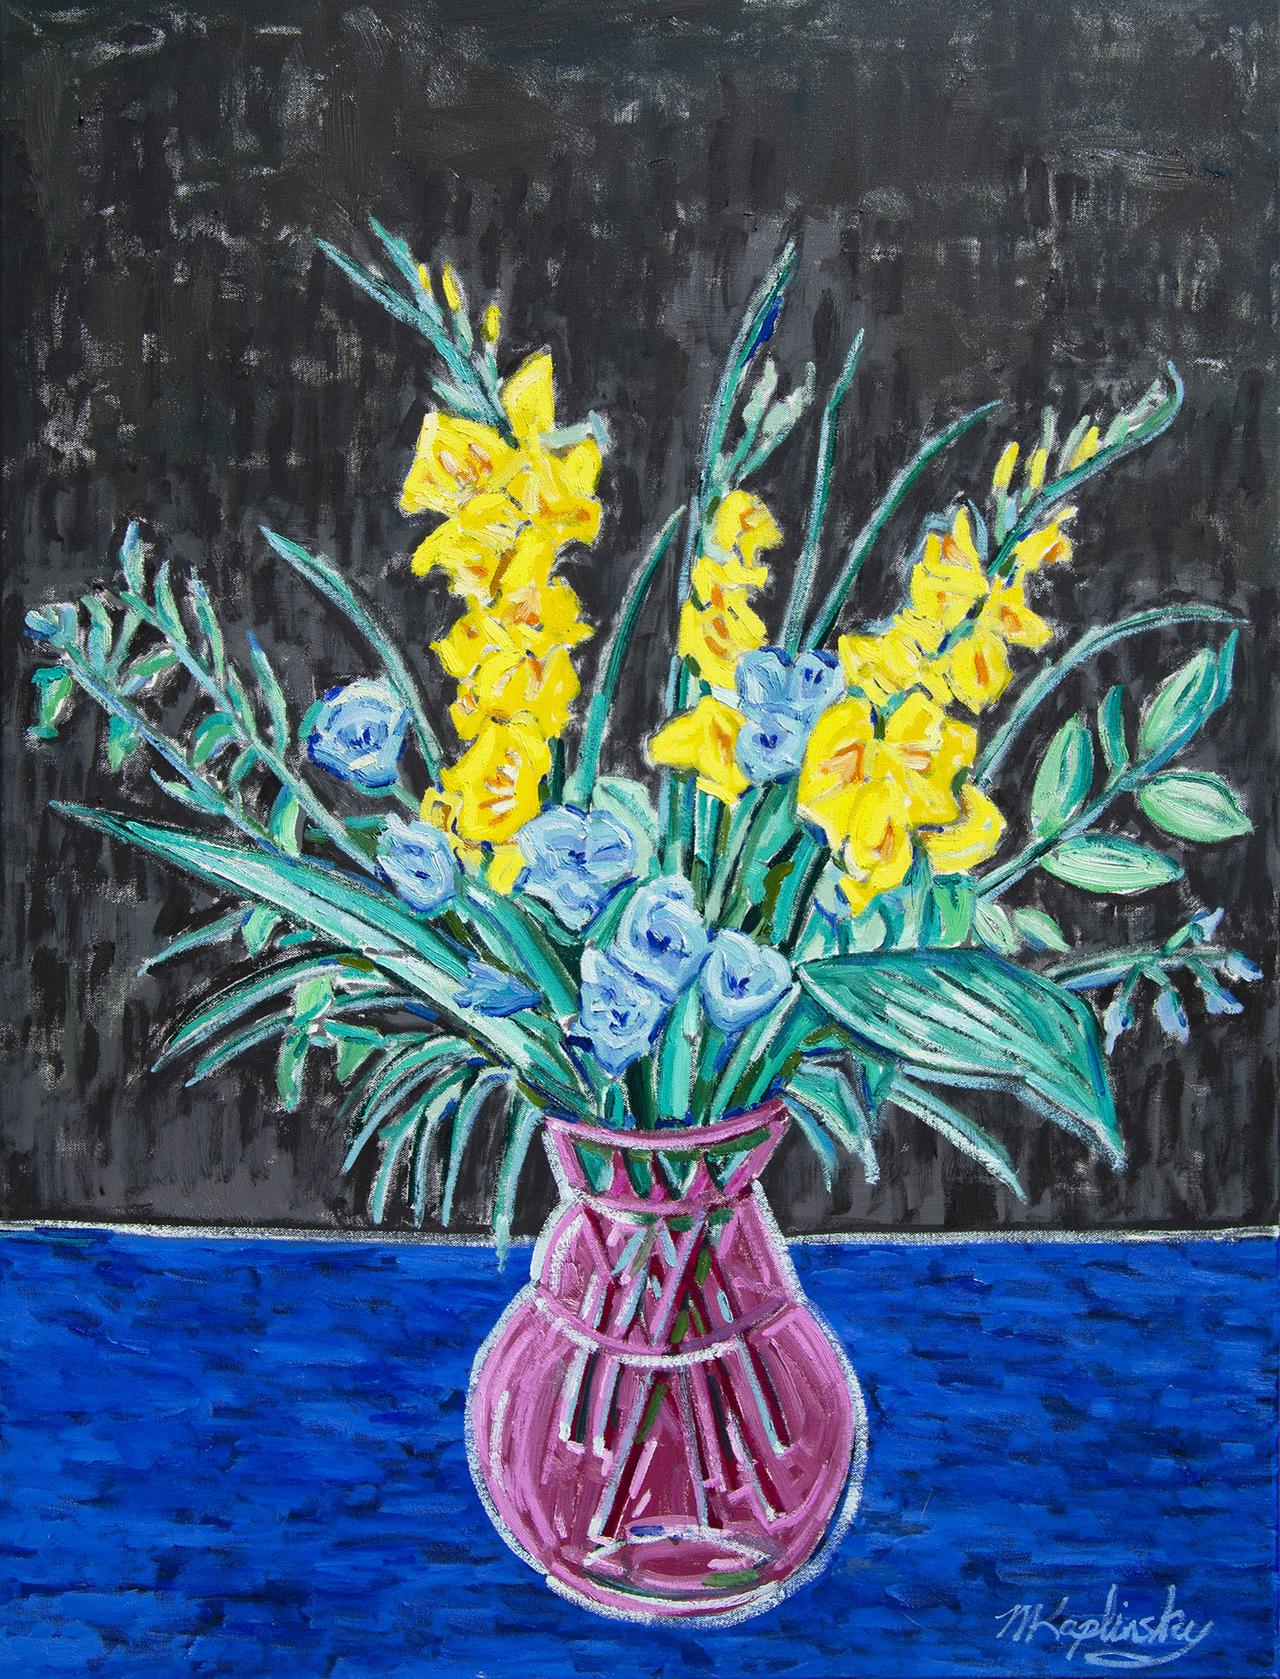 large sketch with yellow gladiolas 40x30 oil on canvas by matt kaplinsky